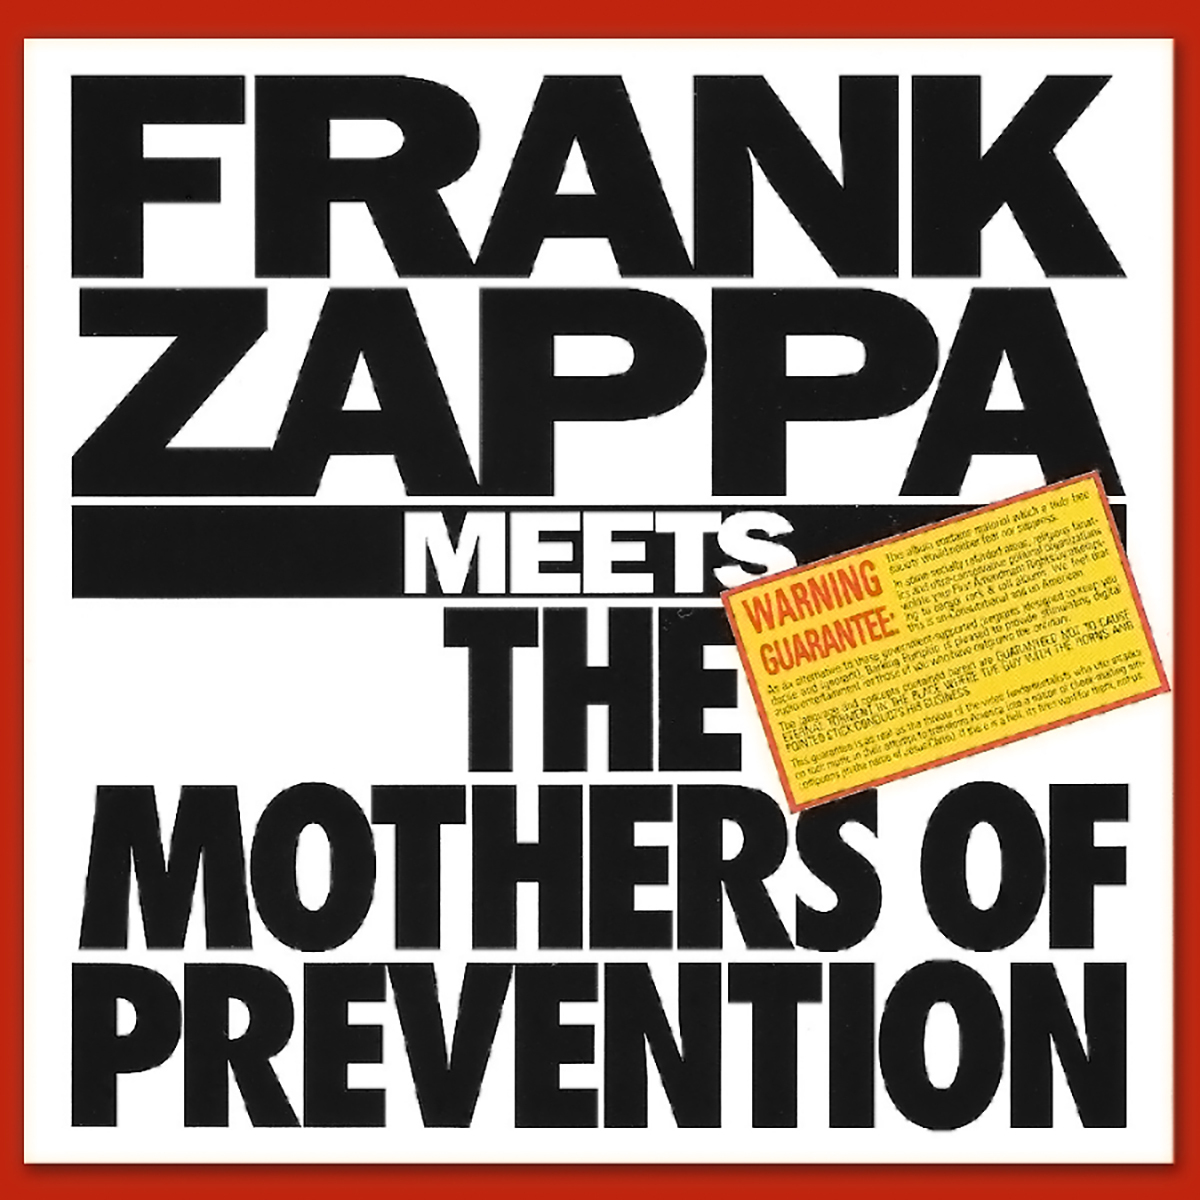 Frank Zappa Meets The Mothers Of Prevention (1985)